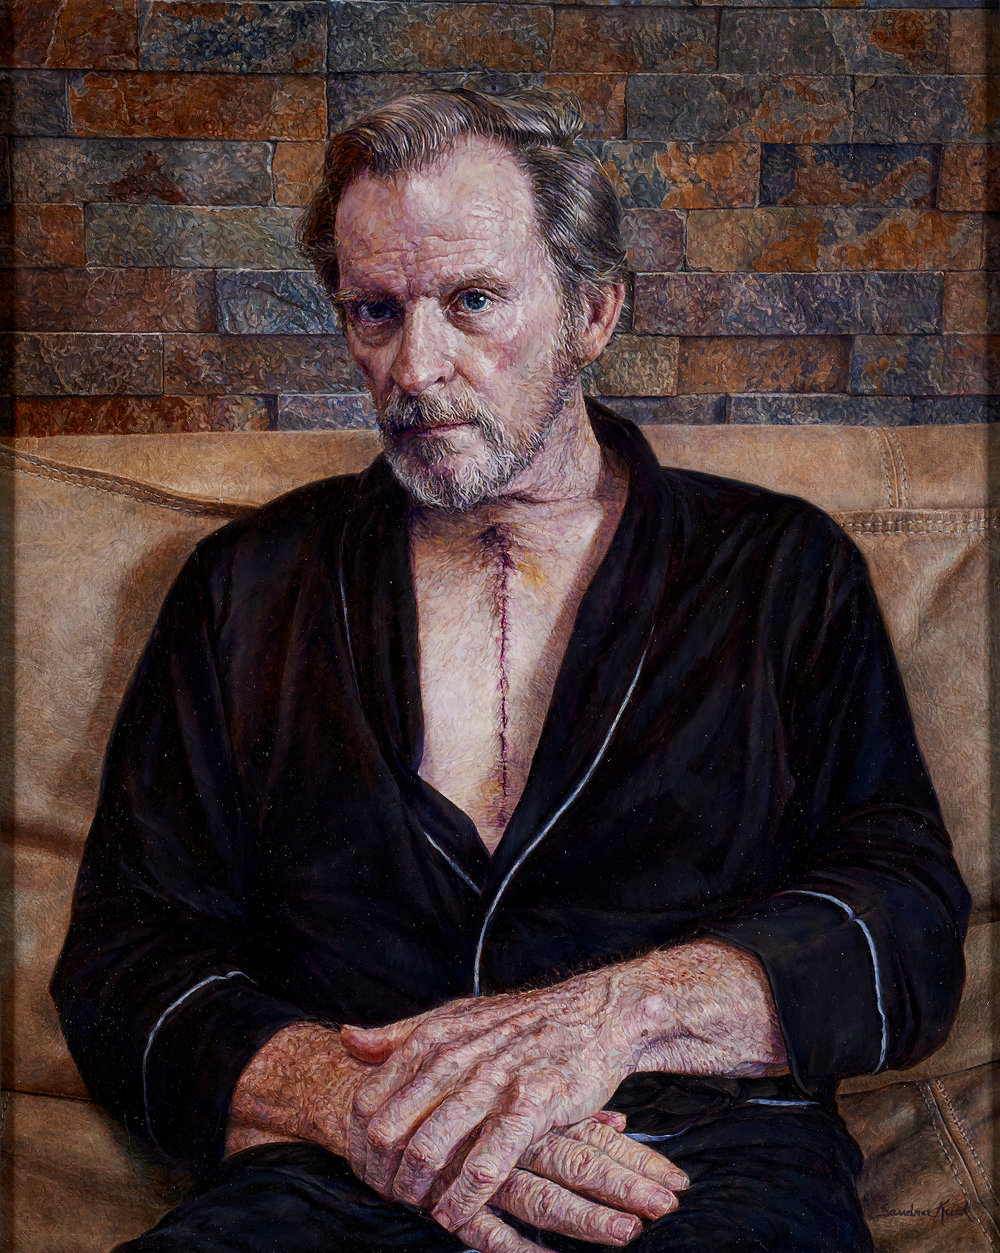 Sandra Kuck  |  Mending Heart (John post-op)  |  Oil on canvas  |  30 x 24 inches or 76 x 61 cm